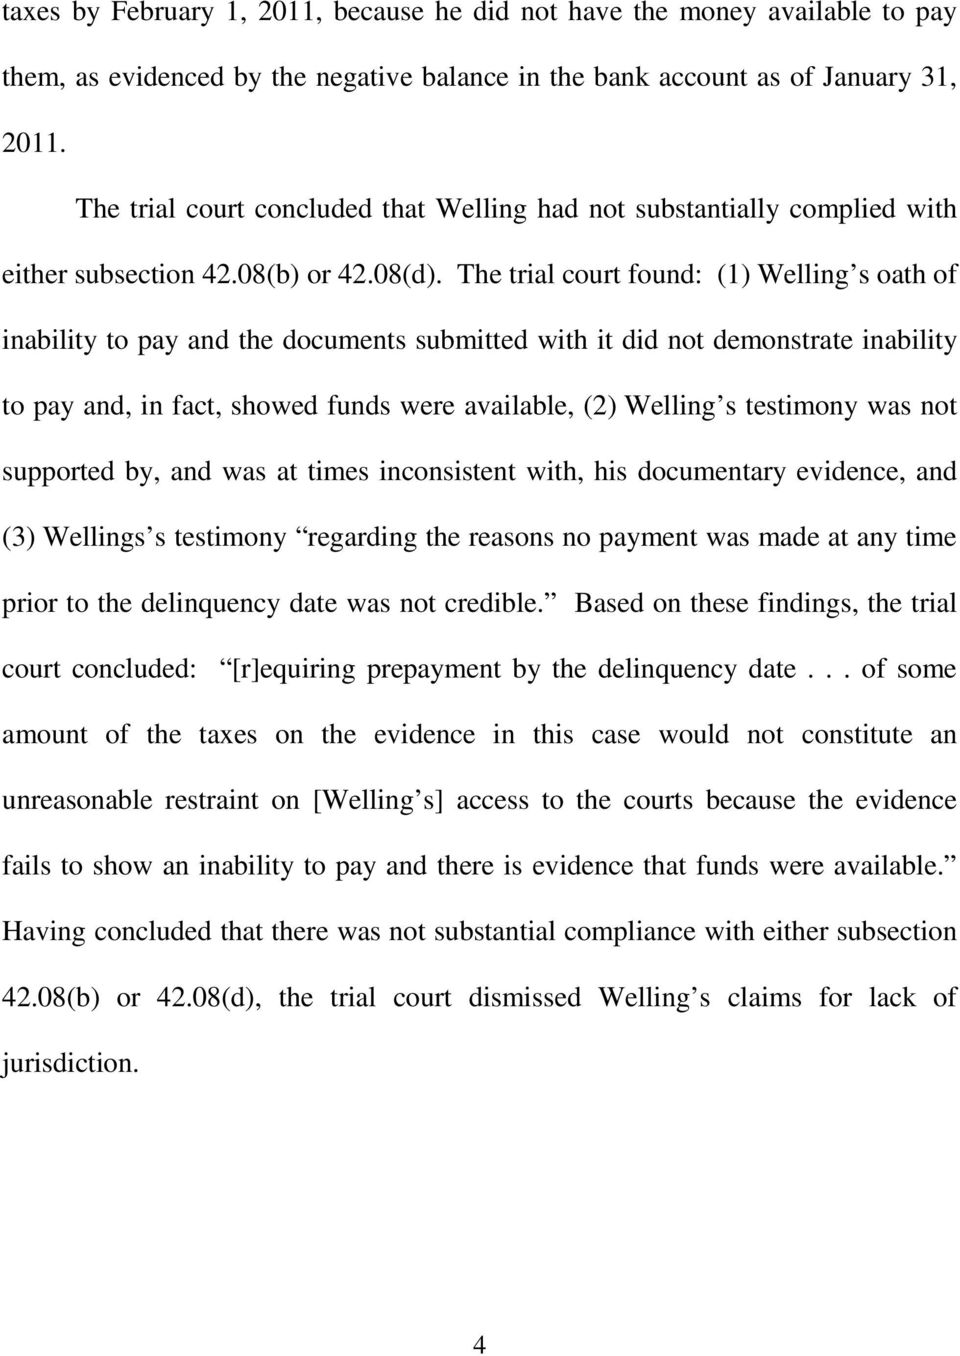 The trial court found: (1) Welling s oath of inability to pay and the documents submitted with it did not demonstrate inability to pay and, in fact, showed funds were available, (2) Welling s